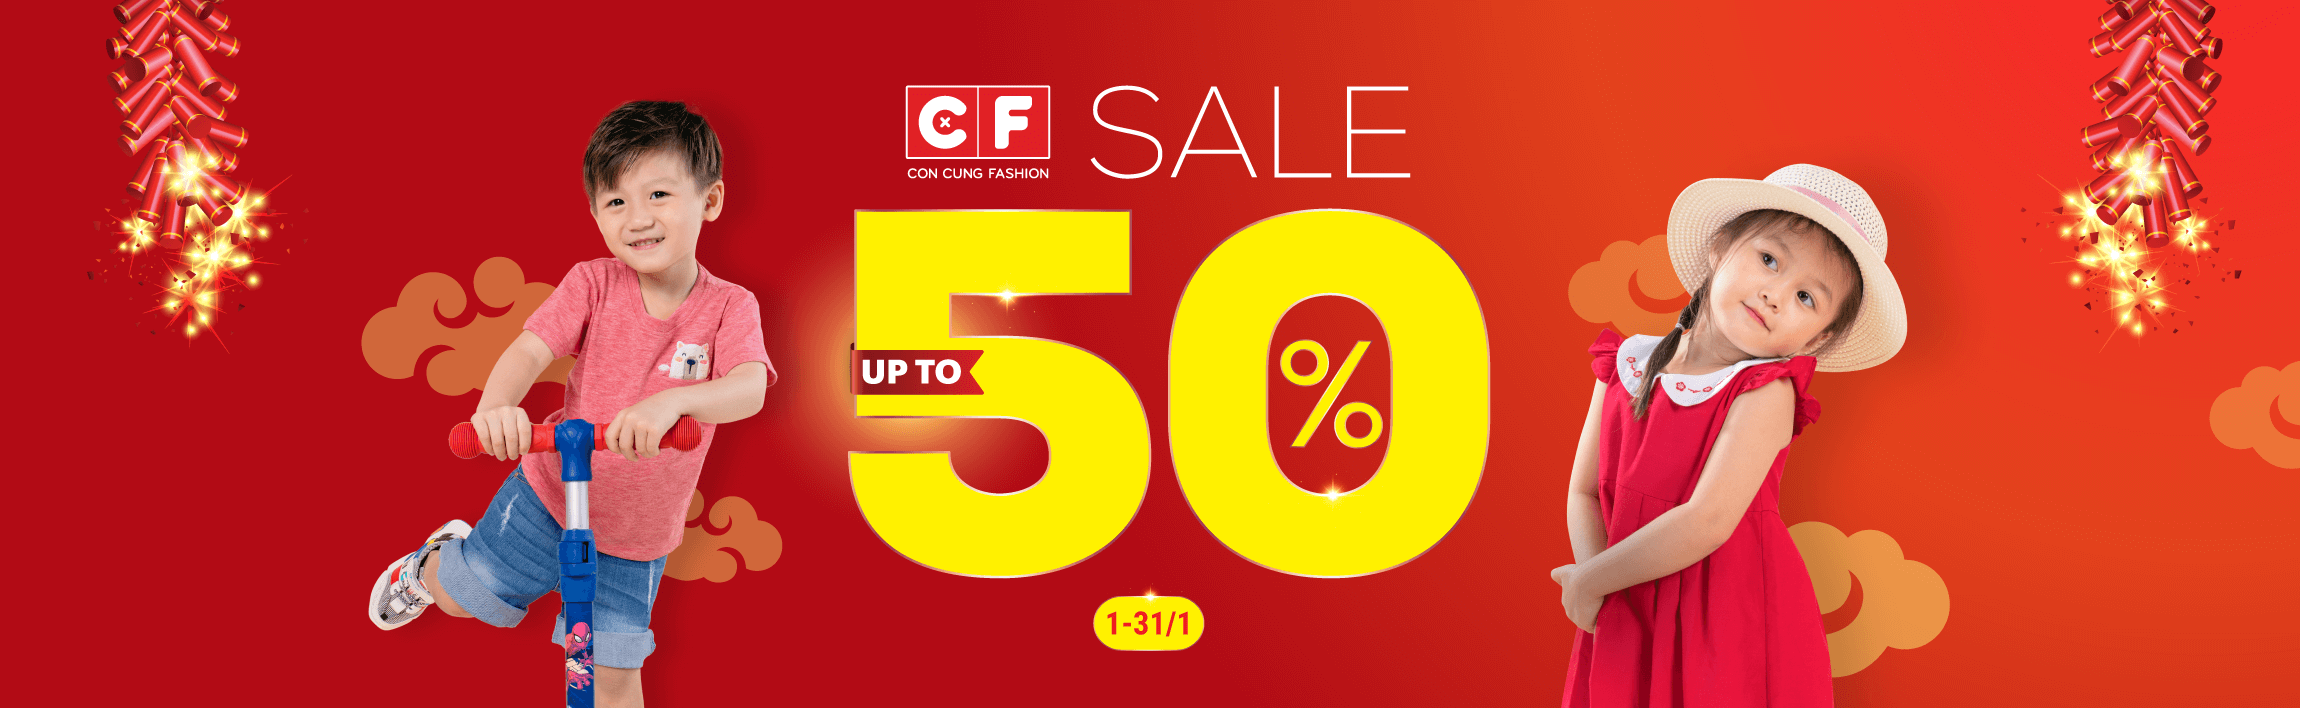 CF - Sale up to 50% 200.000 sản phẩm